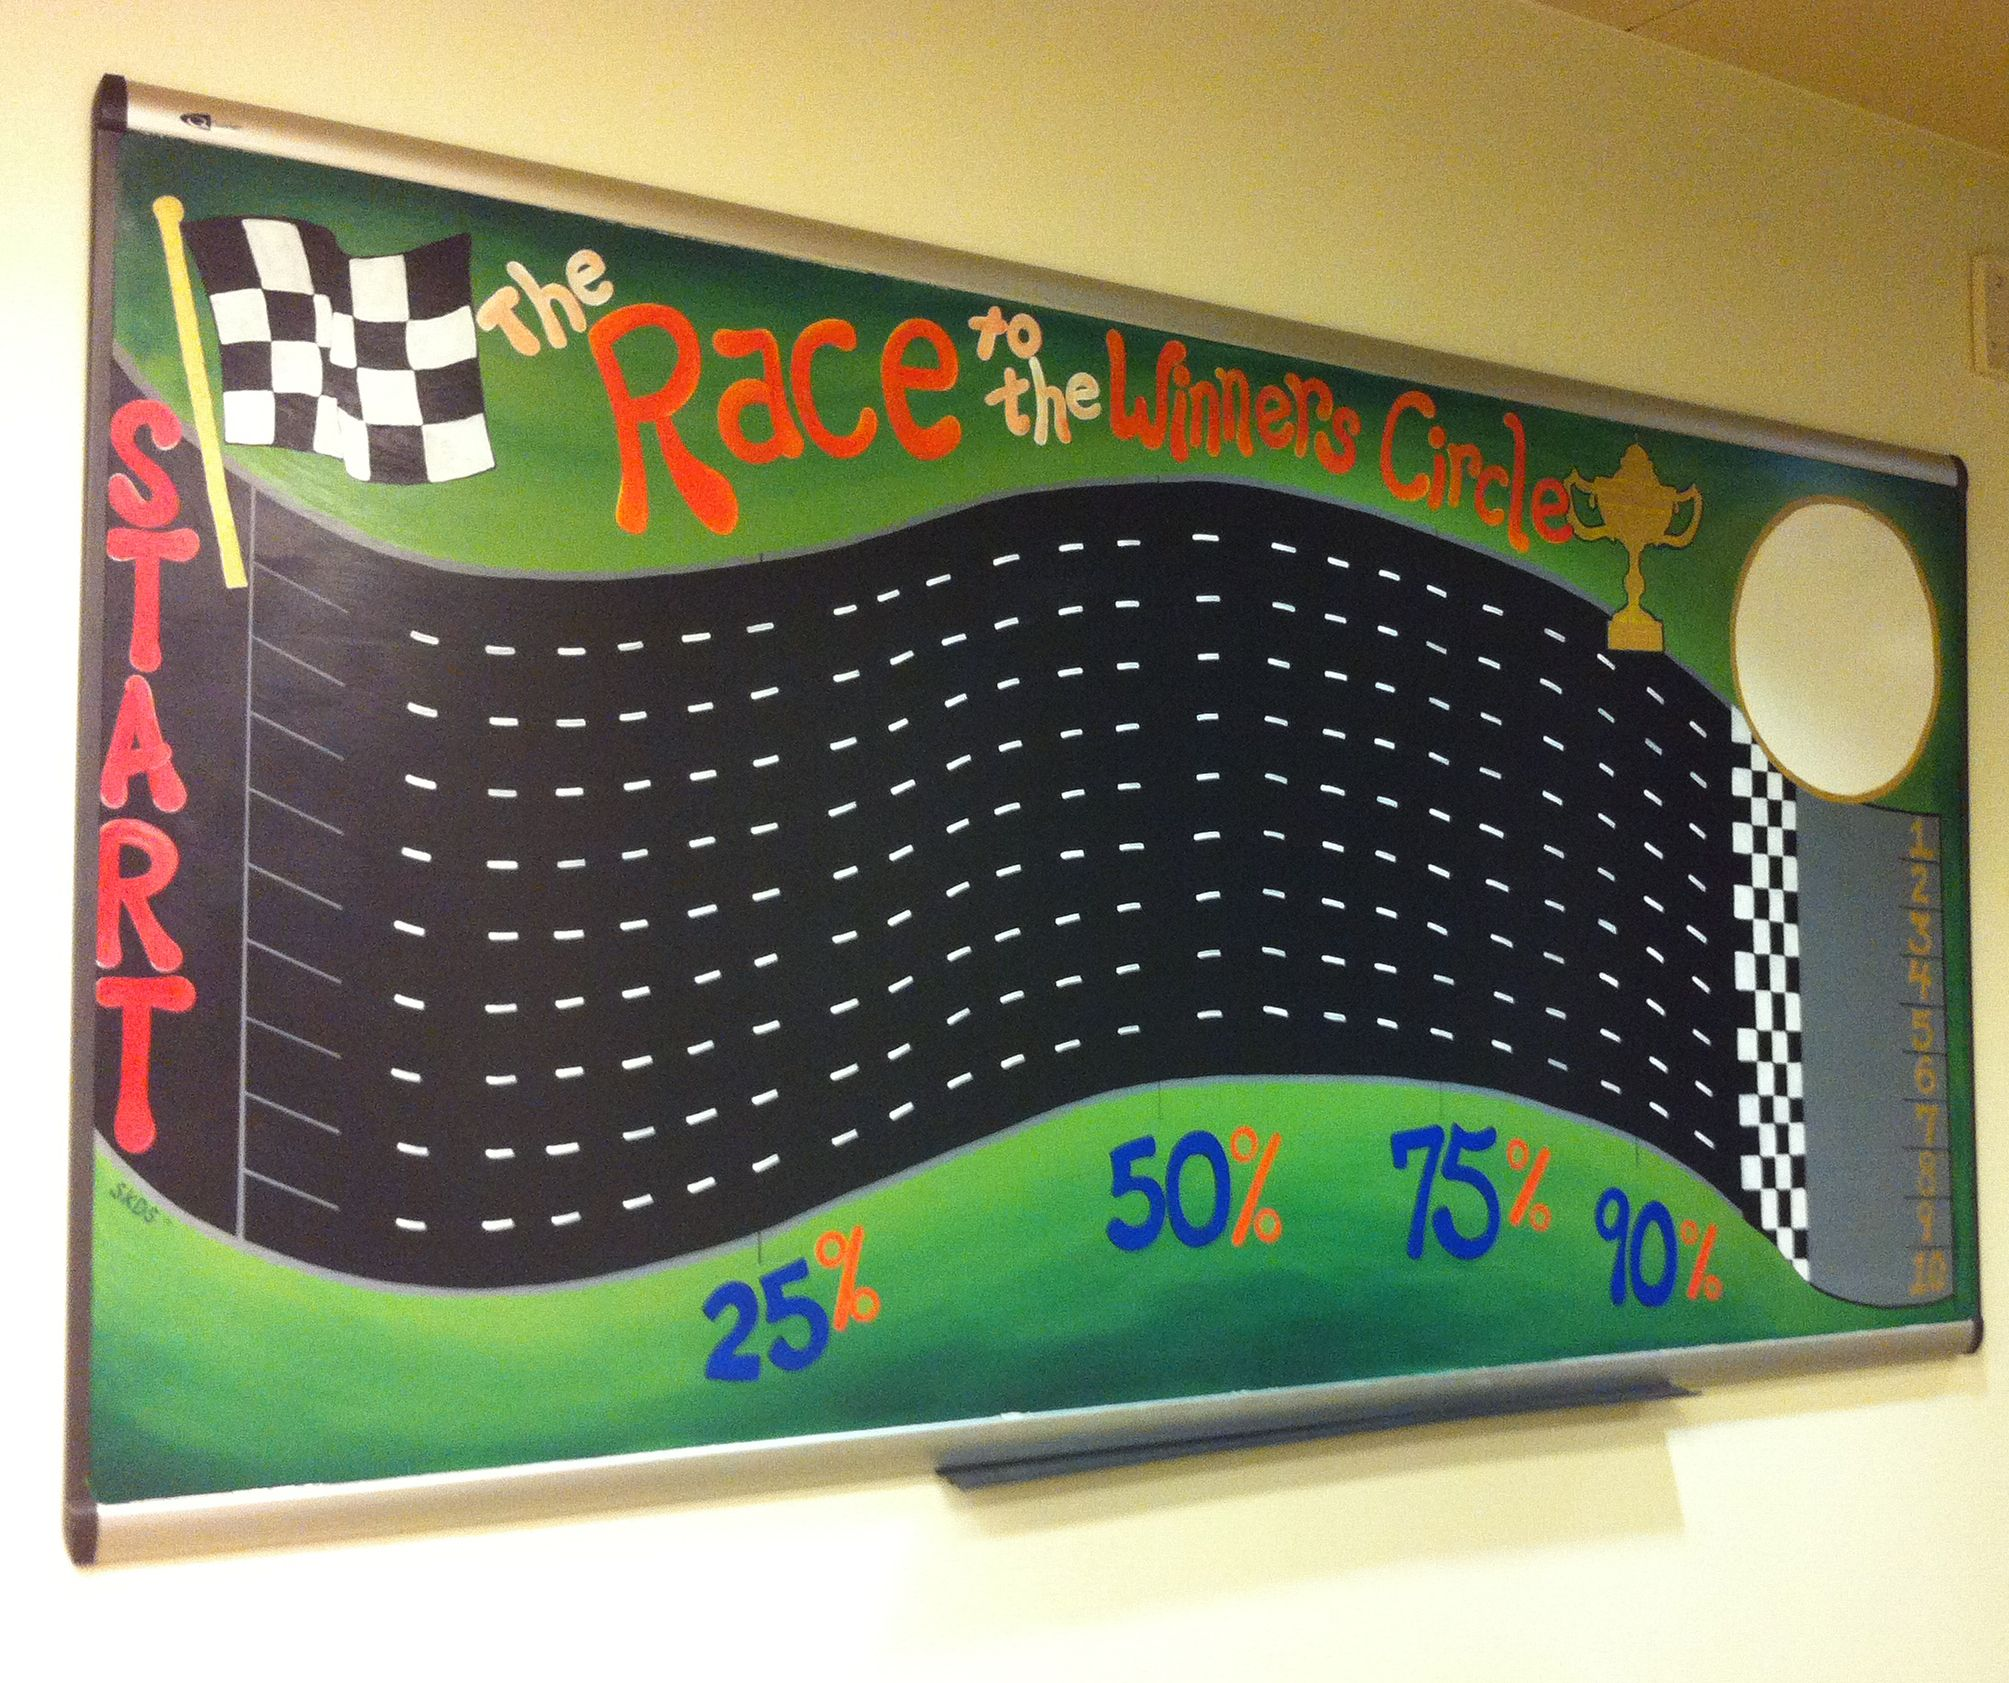 Track Winner: The Race To The Winners Circle